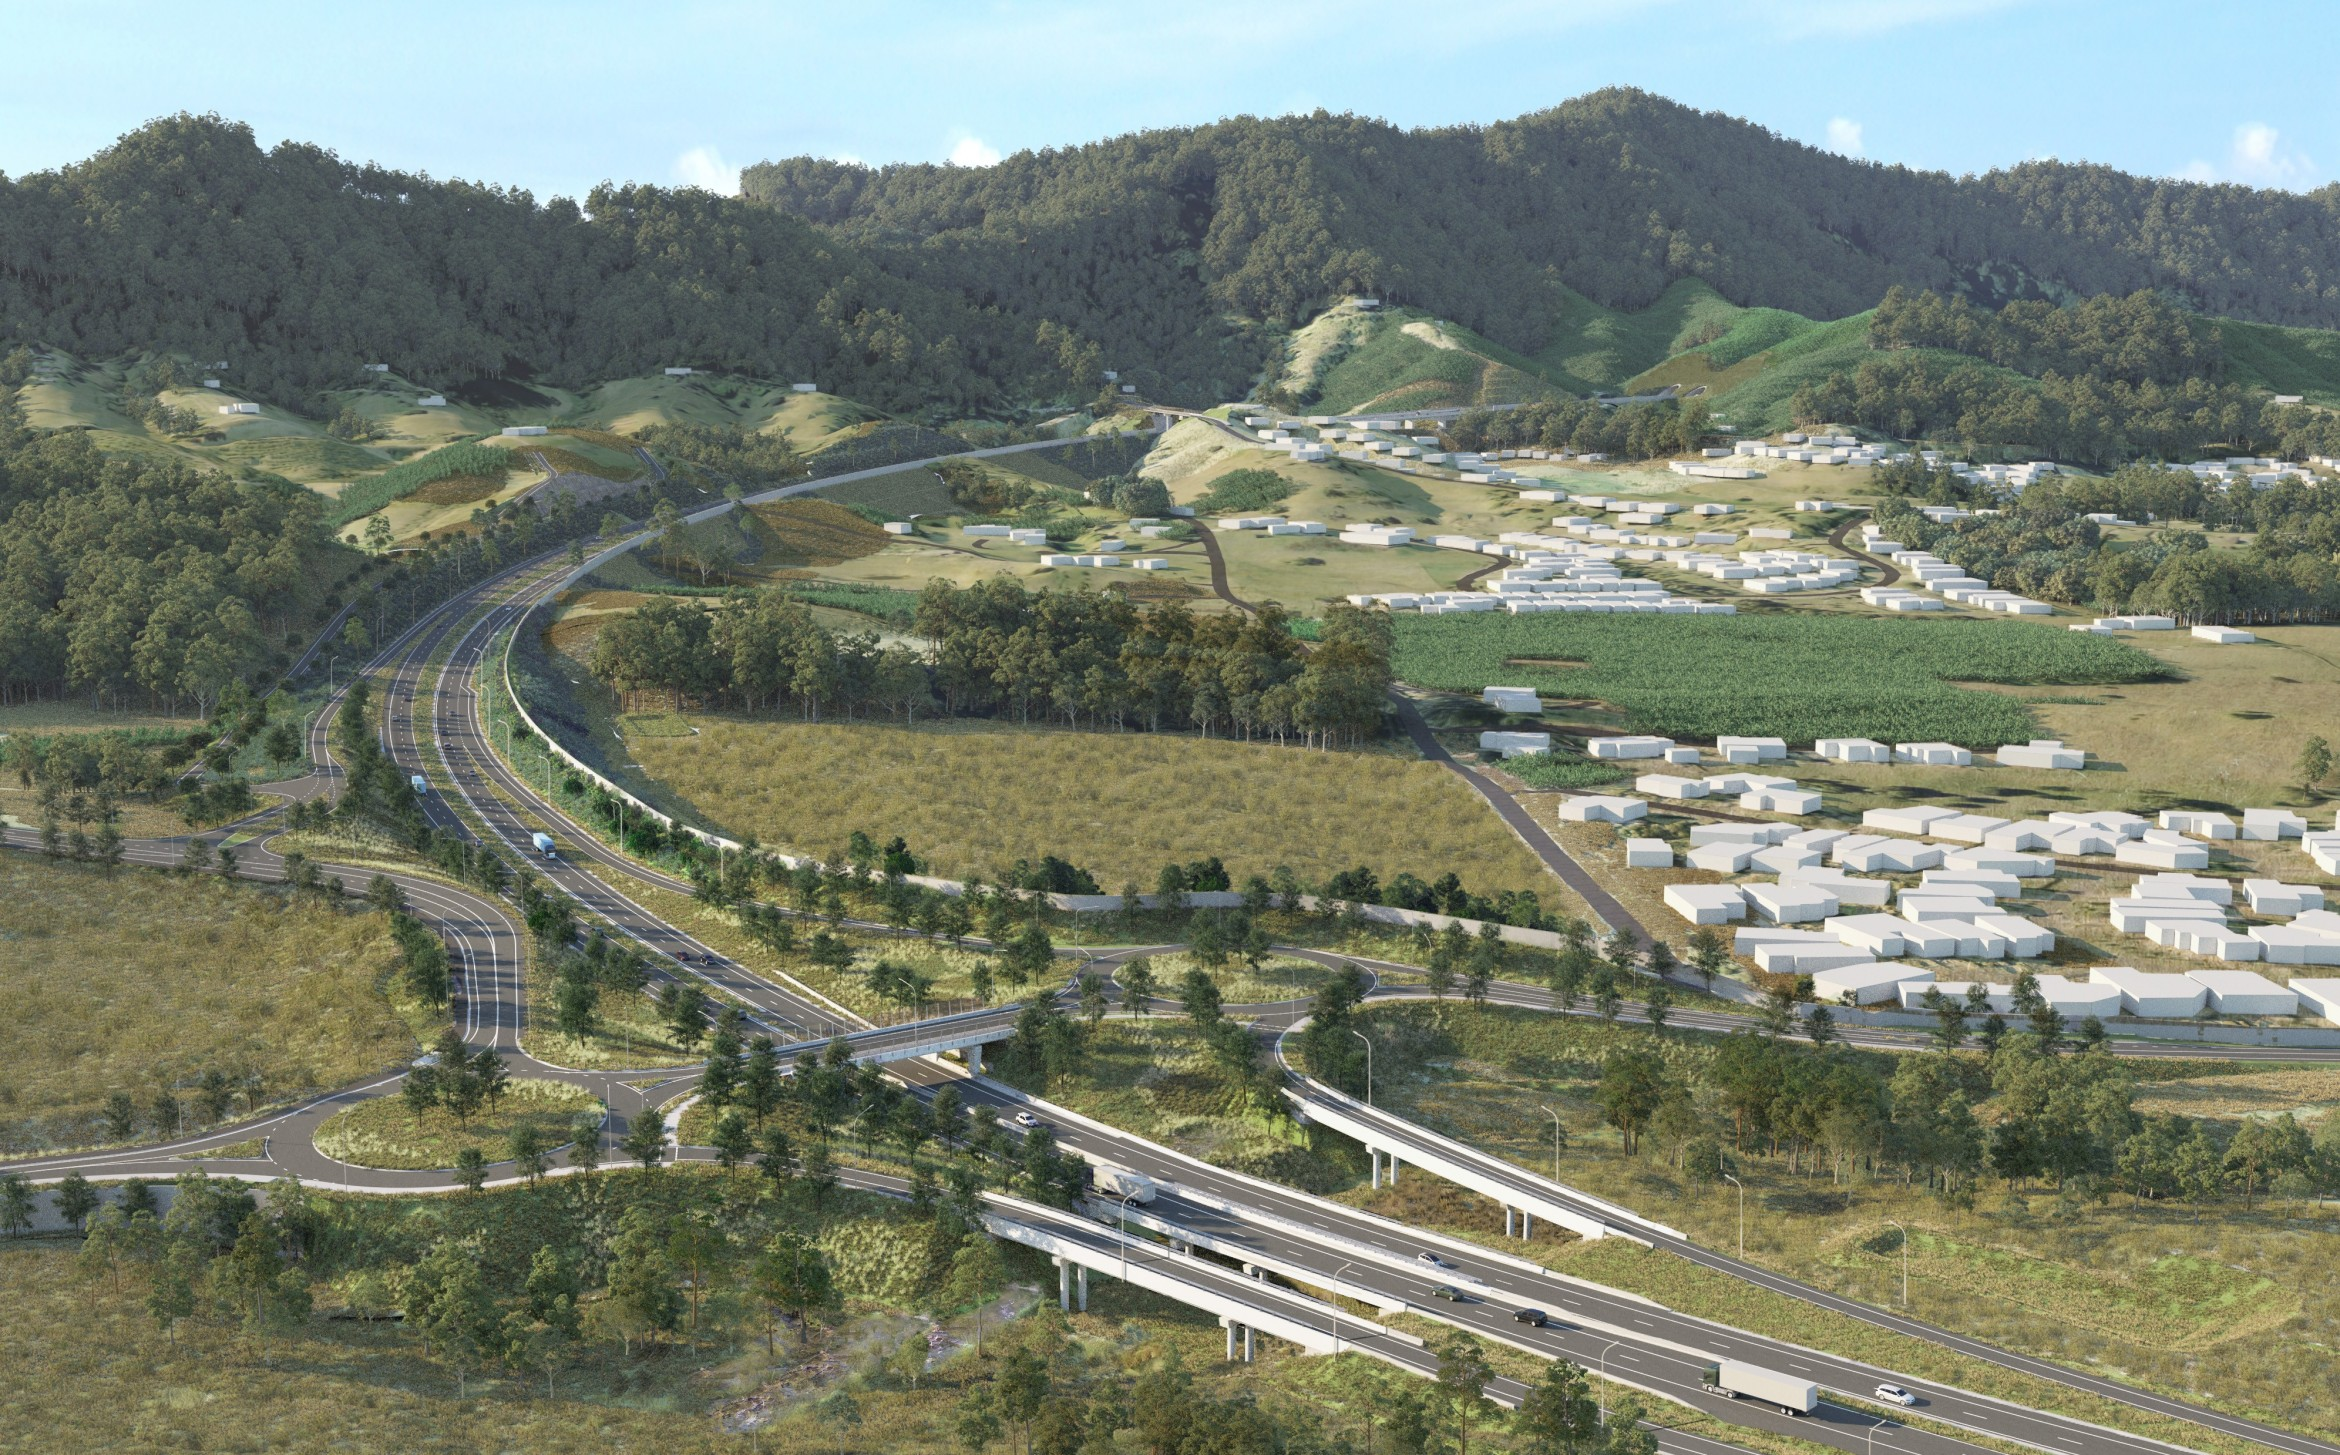 Shortlisted companies announced for $1.8B Coffs Harbour bypass